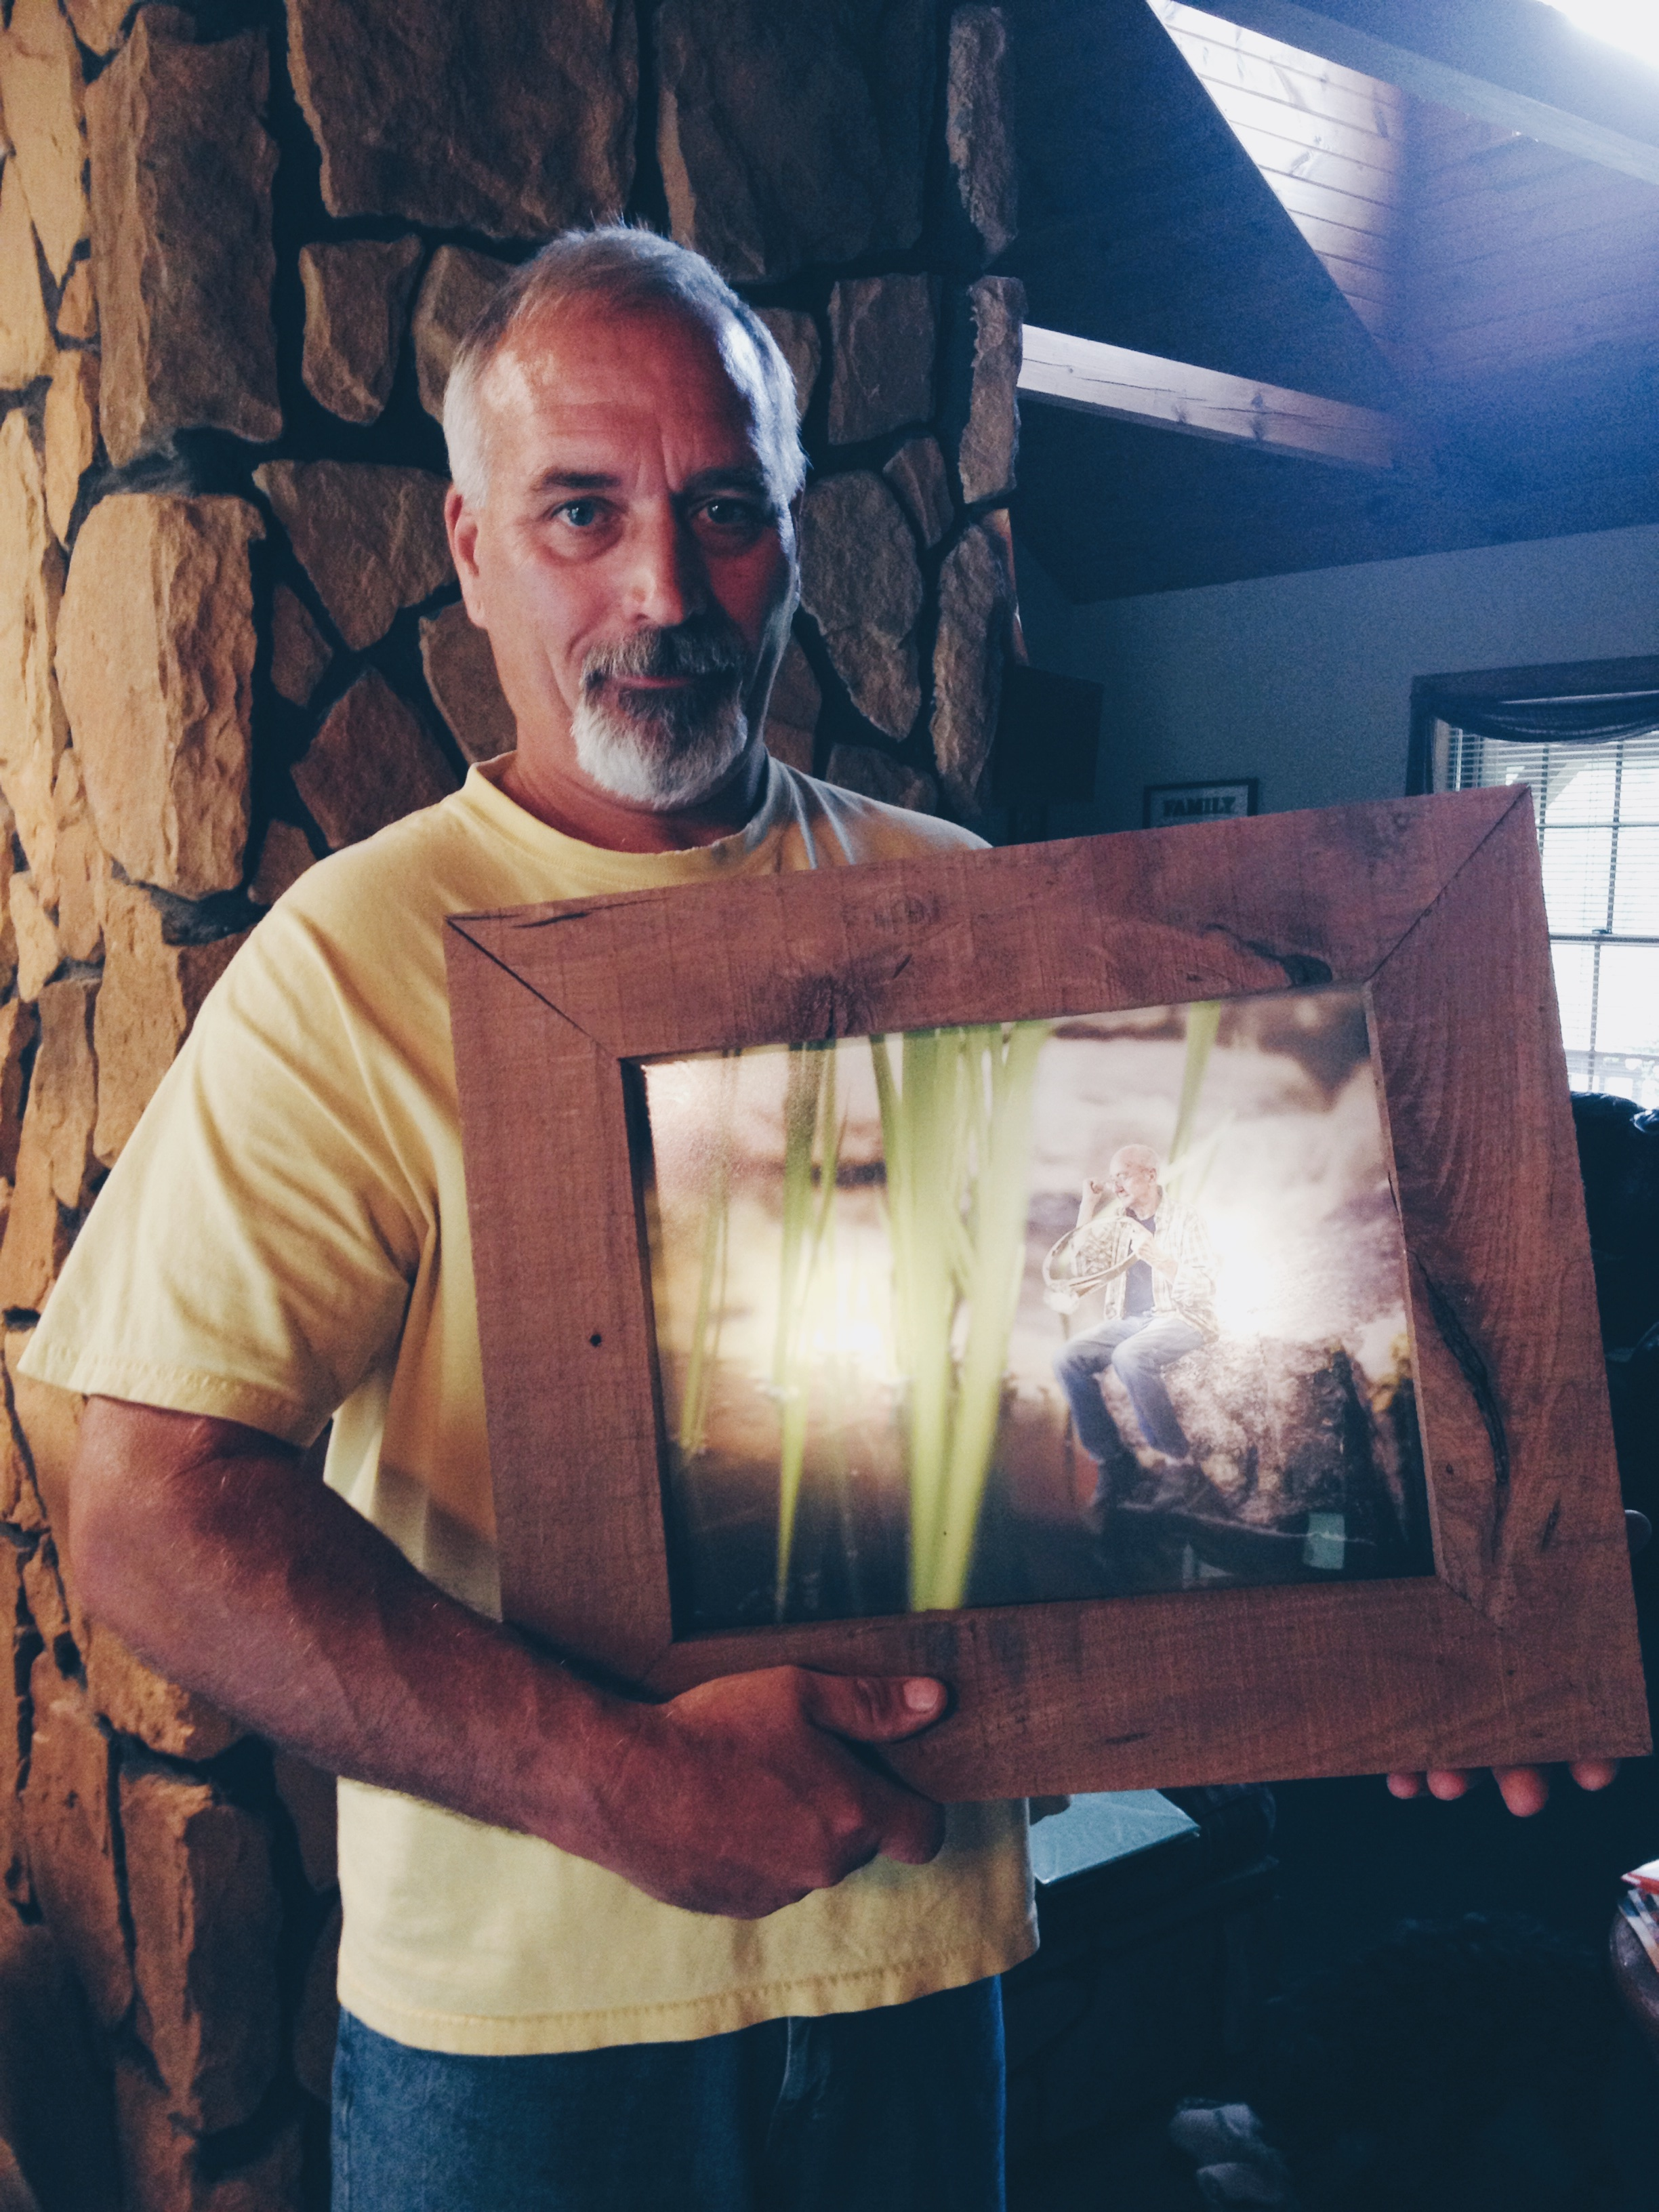 Dad holding the final product after a full week of work on the five frames we designed and he built from scratch.